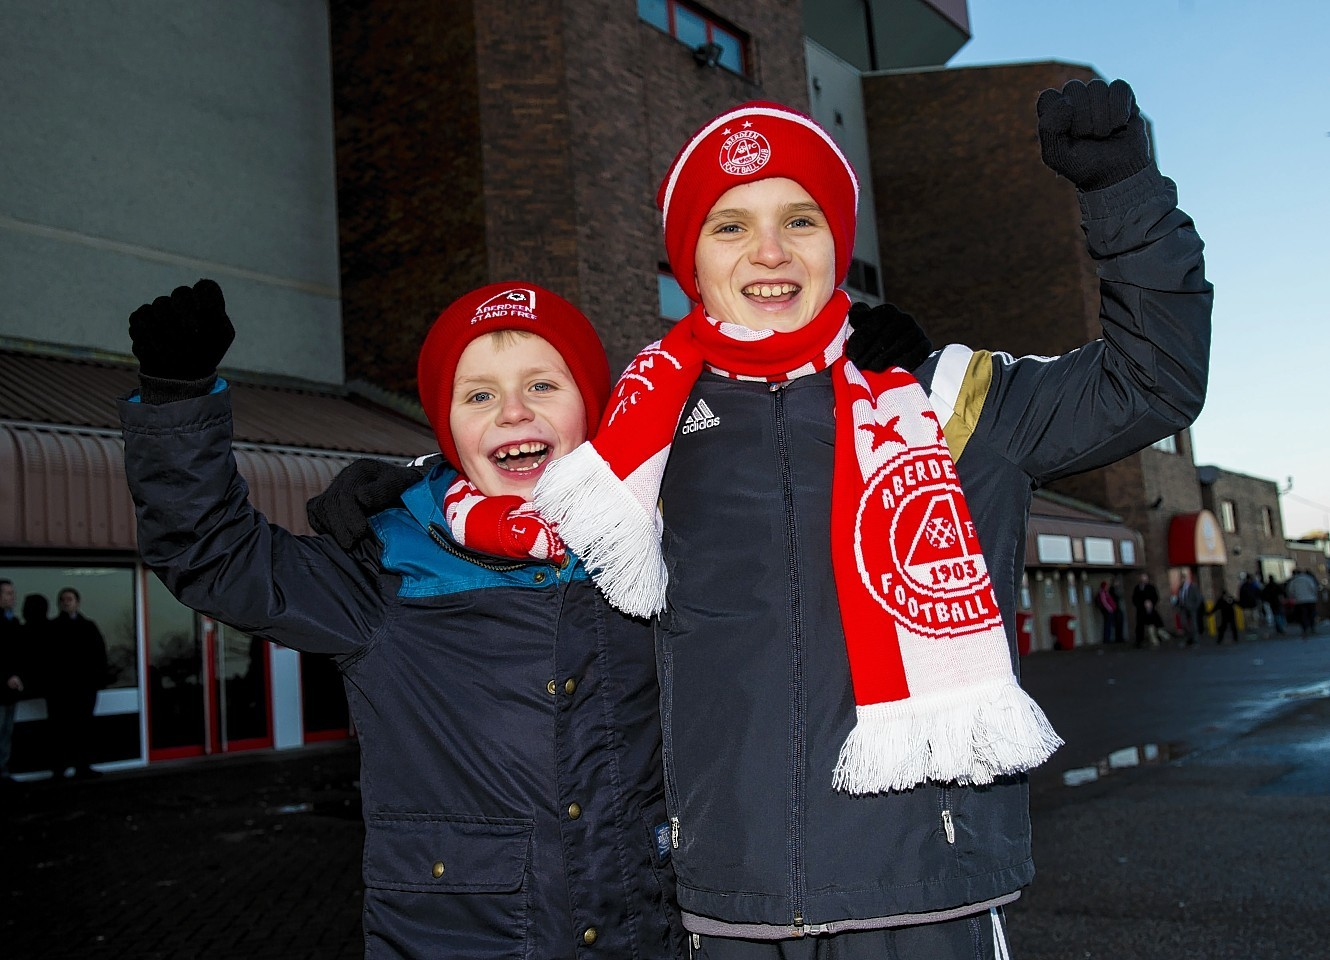 Dons fans have bought over 15,000 tickets